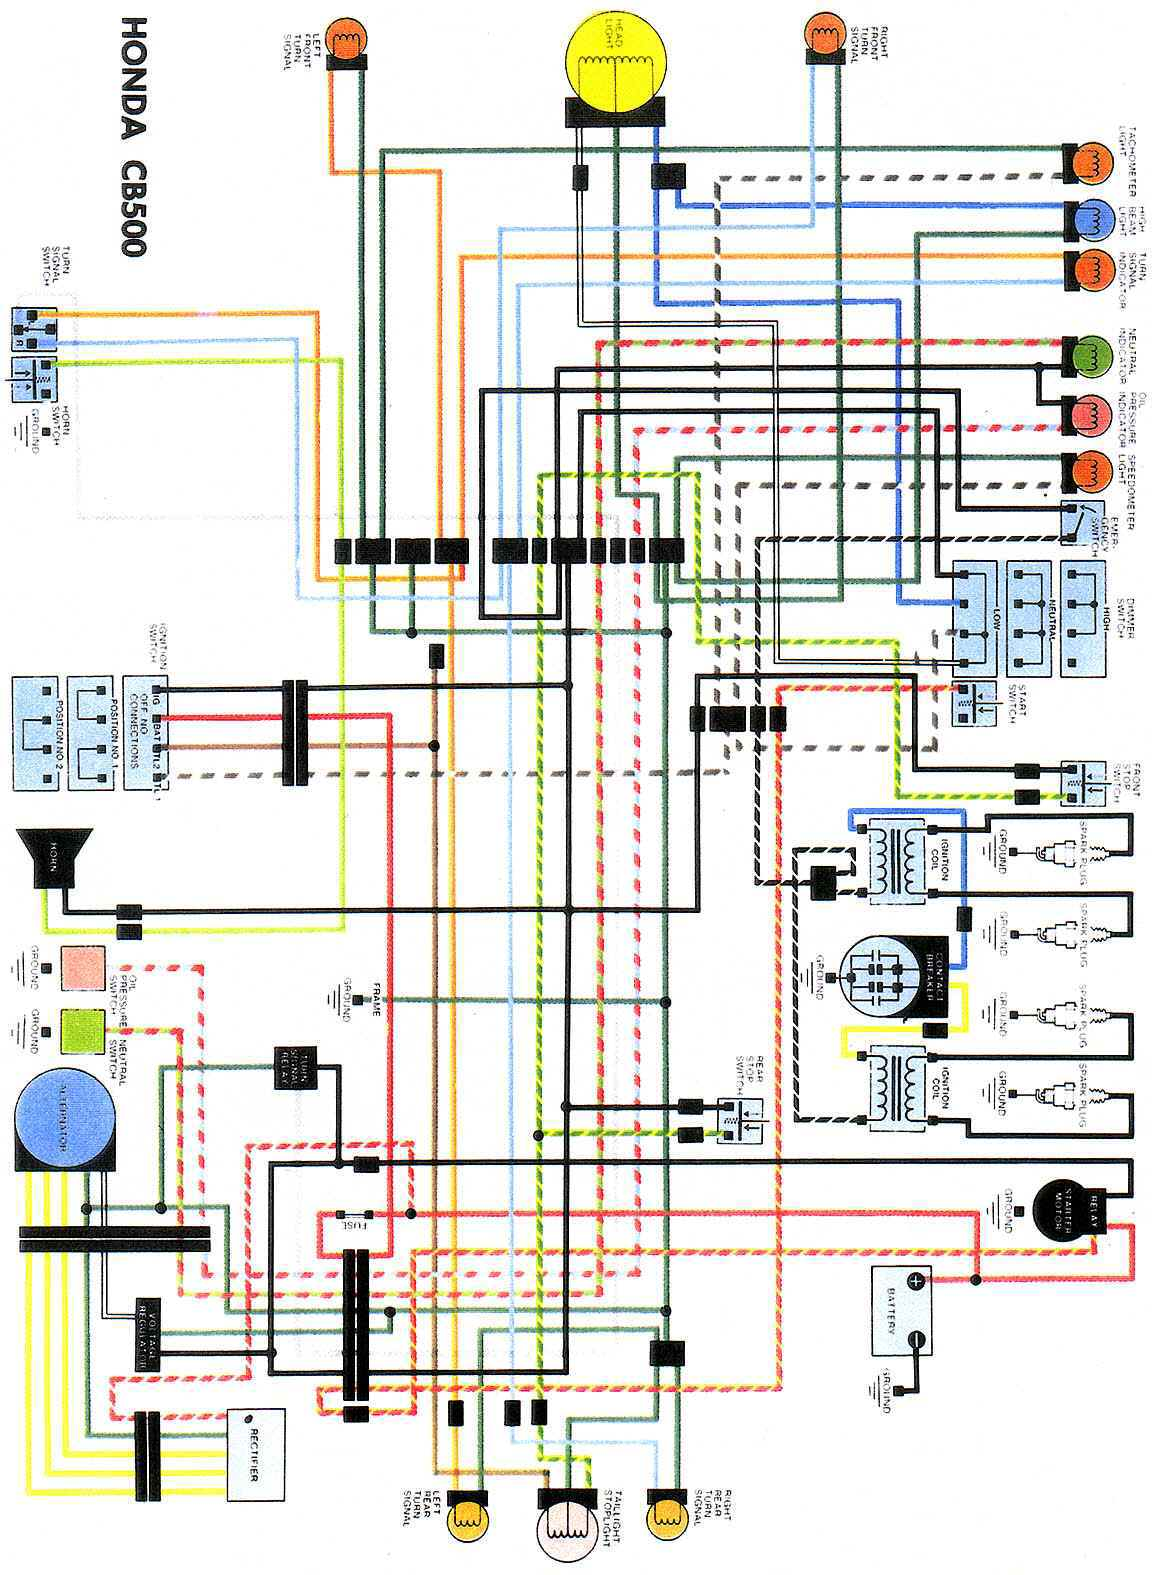 Honda 500 4 Wiring Diagram | Wiring Diagram on honda c70 wiring-diagram, honda motorcycle gearbox, honda c 200 wiring diagram, honda motorcycle carb diagrams, honda cb350 wiring-diagram, honda cb750 wiring-diagram, honda 90 ignition wiring diagram, honda cb550 wiring-diagram, honda chopper wiring diagram, honda motorcycle transmission, honda rancher wiring-diagram, honda motorcycle fuse, honda sl70 wiring-diagram, honda wiring harness diagram, honda vtx wiring-diagram, honda motorcycle fuel system, honda crf50 wiring diagram, honda xr 250 wiring diagram, honda elite wiring-diagram, honda motorcycle ignition,